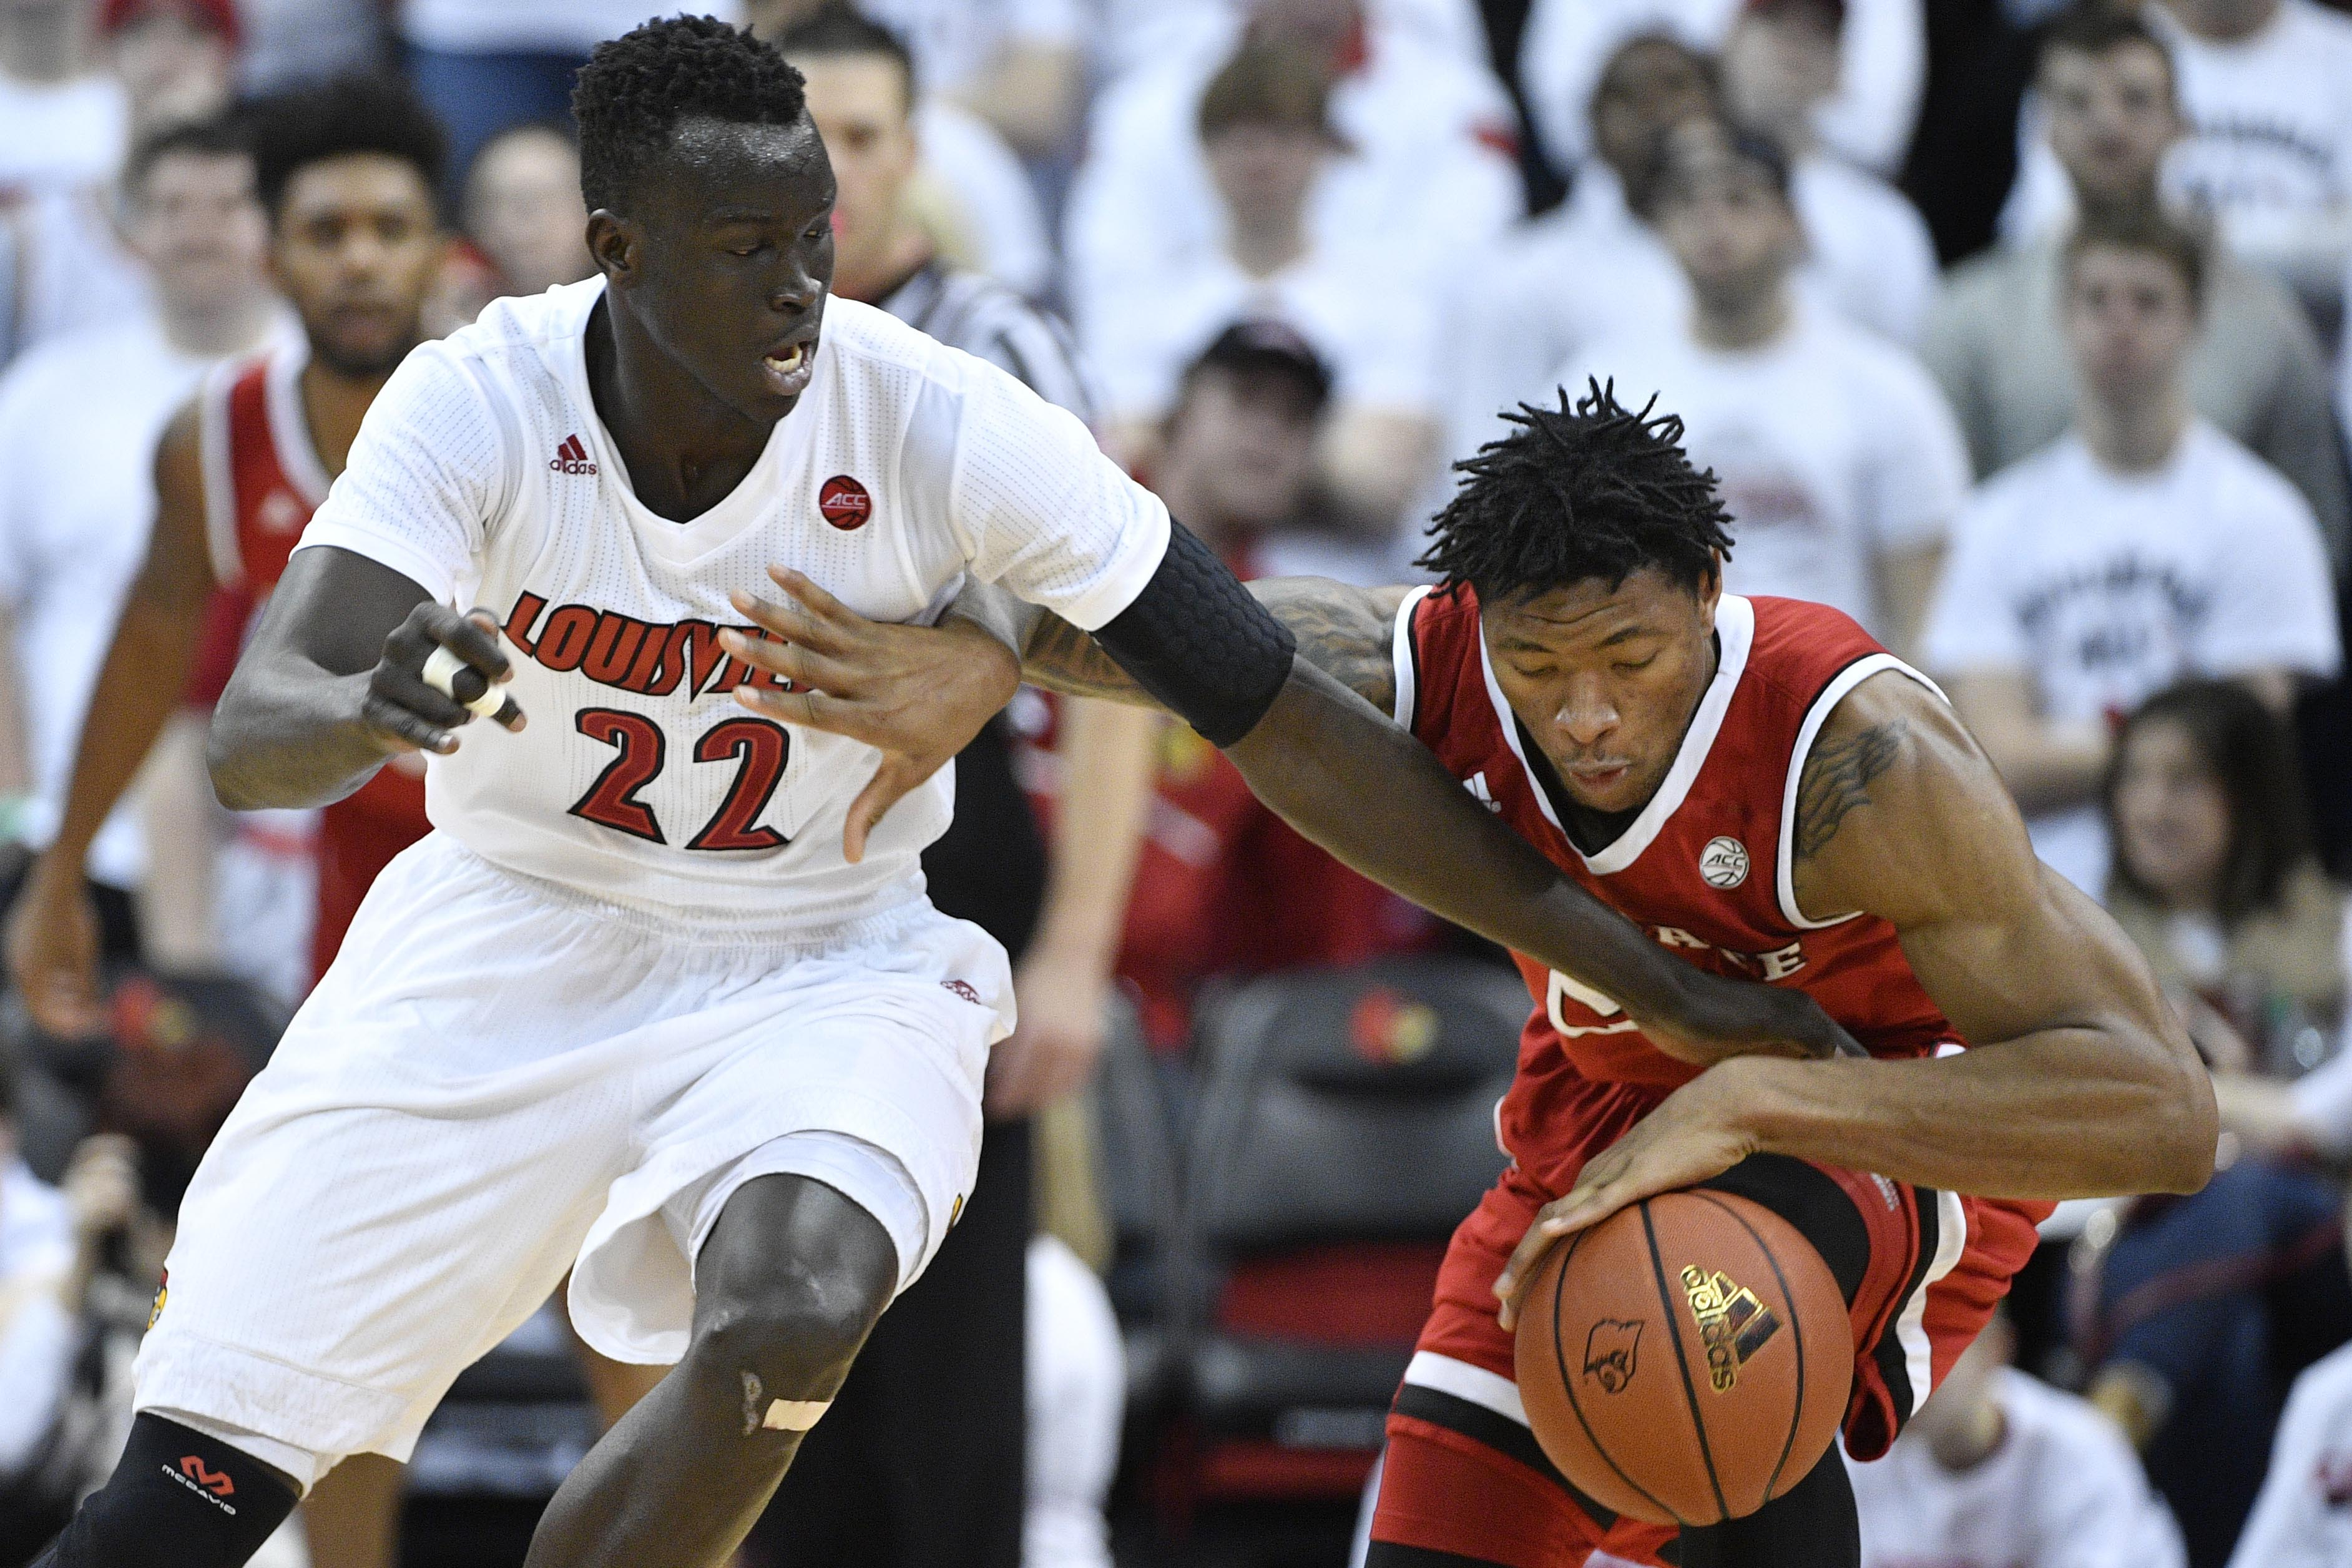 Jan 29, 2017; Louisville, KY, USA; Louisville Cardinals forward Deng Adel (22) tries to steal the ball from North Carolina State Wolfpack forward Ted Kapita (23) during the second half at KFC Yum! Center. The Cardinals won 85-60. Mandatory Credit: Jamie Rhodes-USA TODAY Sports